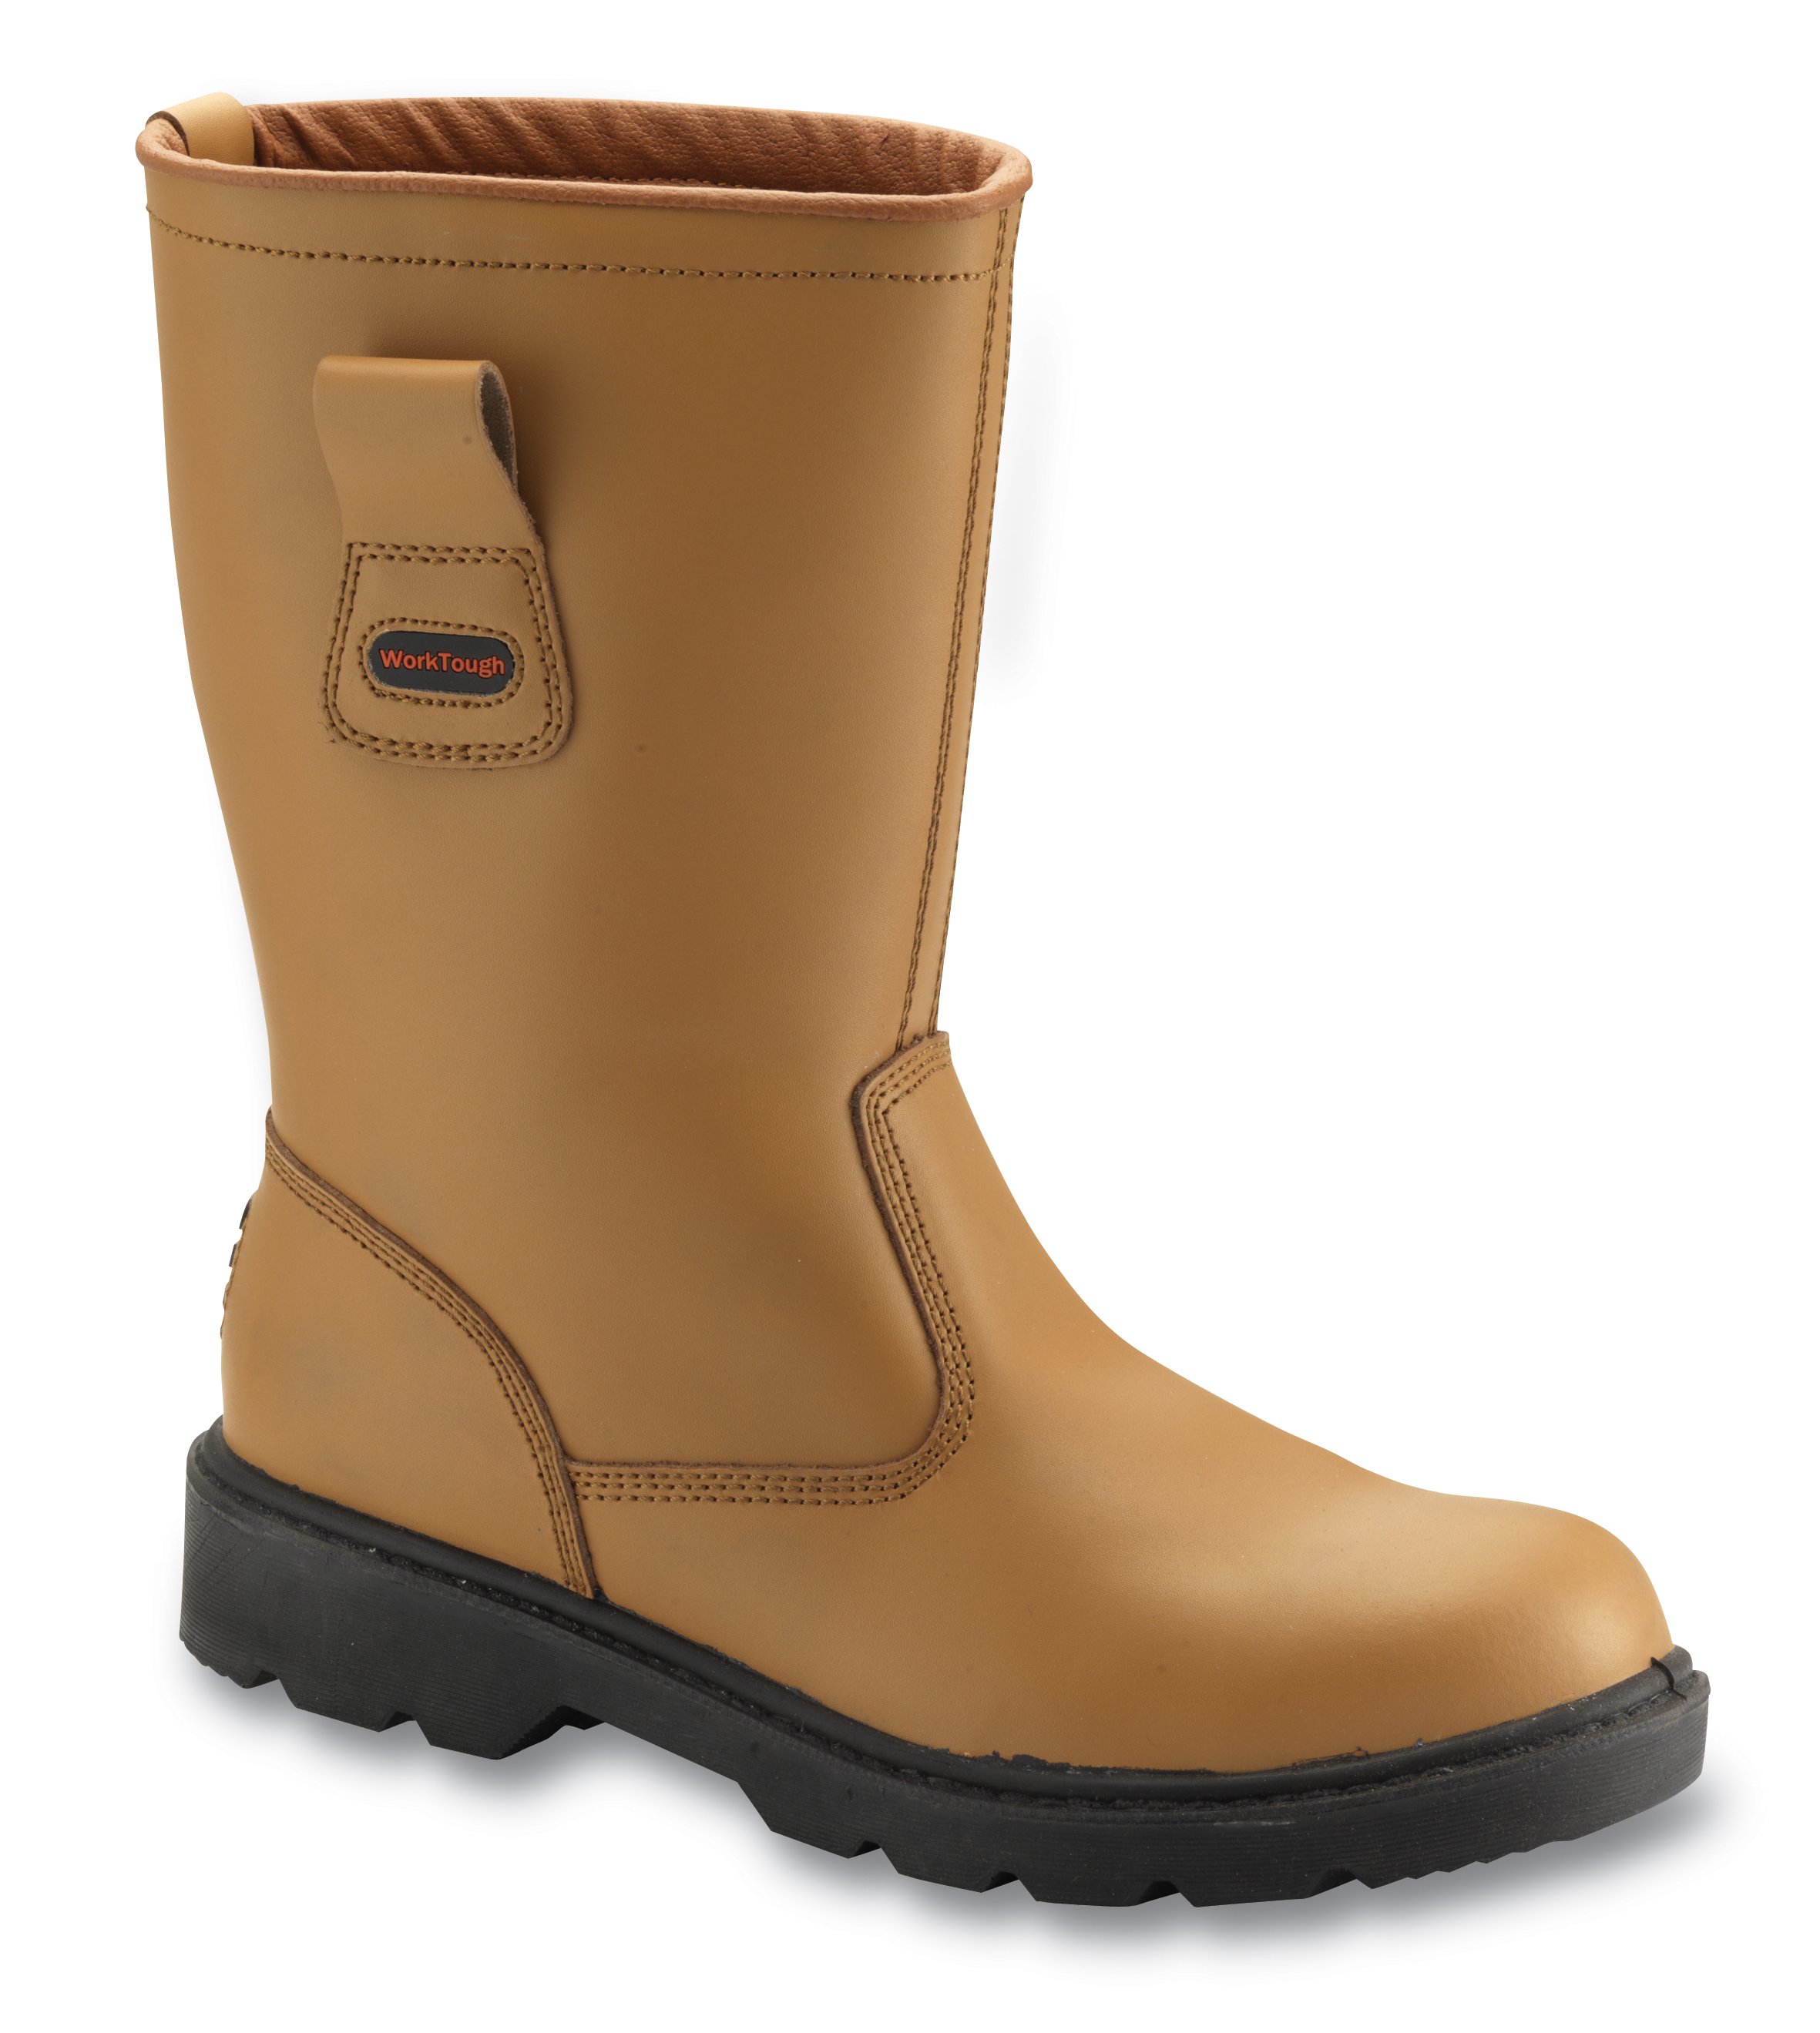 Progressive Safety WorkTough Rigger Boots